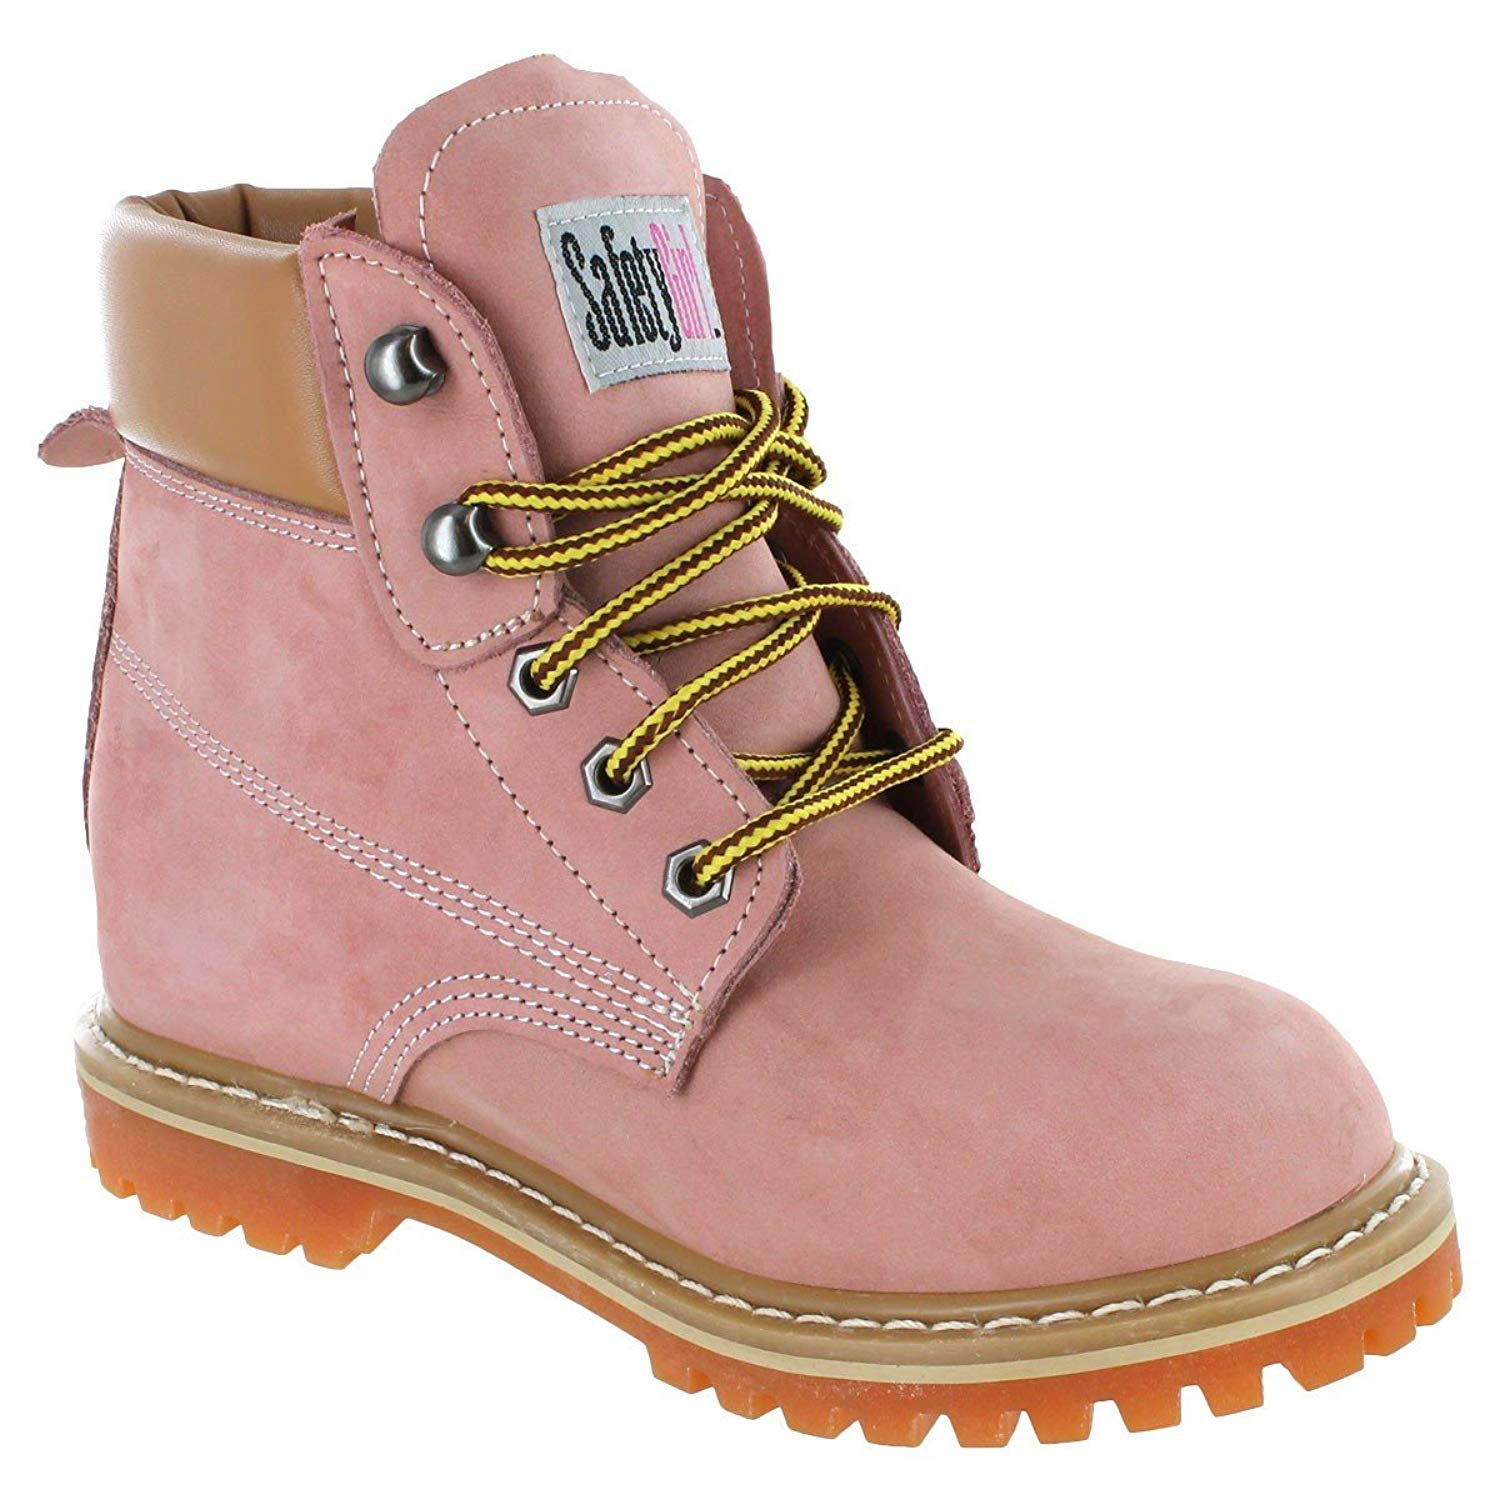 0740181732d Get Quotations · Safety Girl II Soft Toe Womens Work Boots - Light Pink